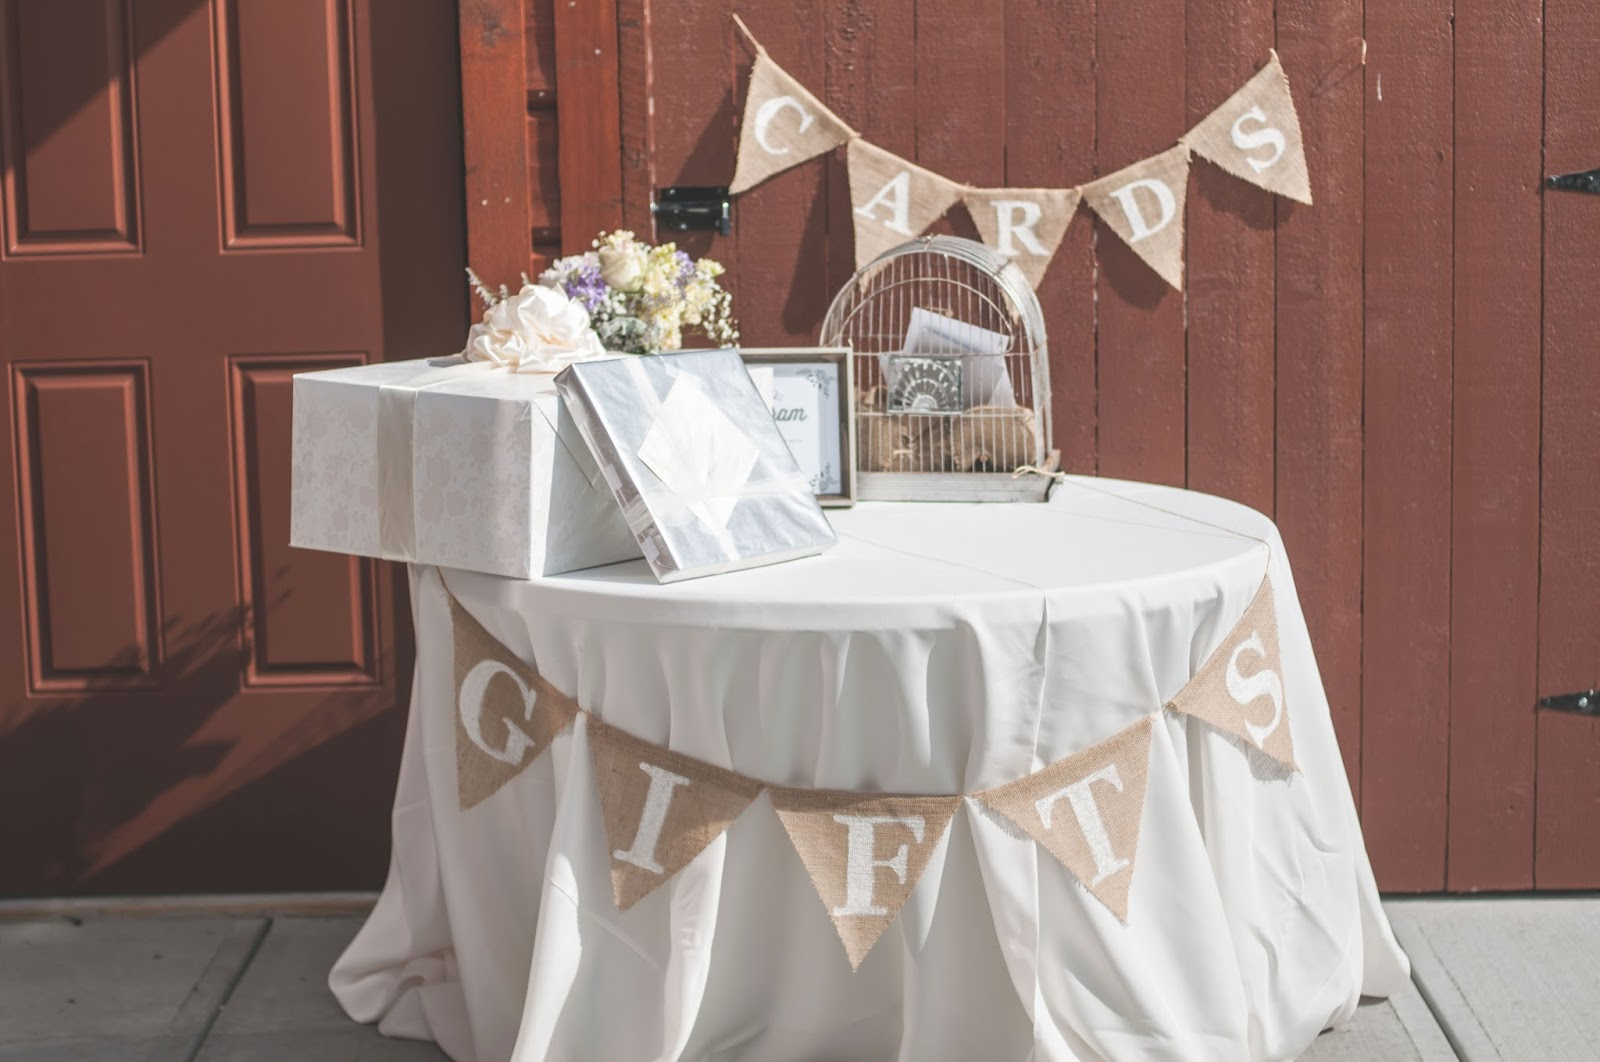 Burlap Gift Table and Cards Garland